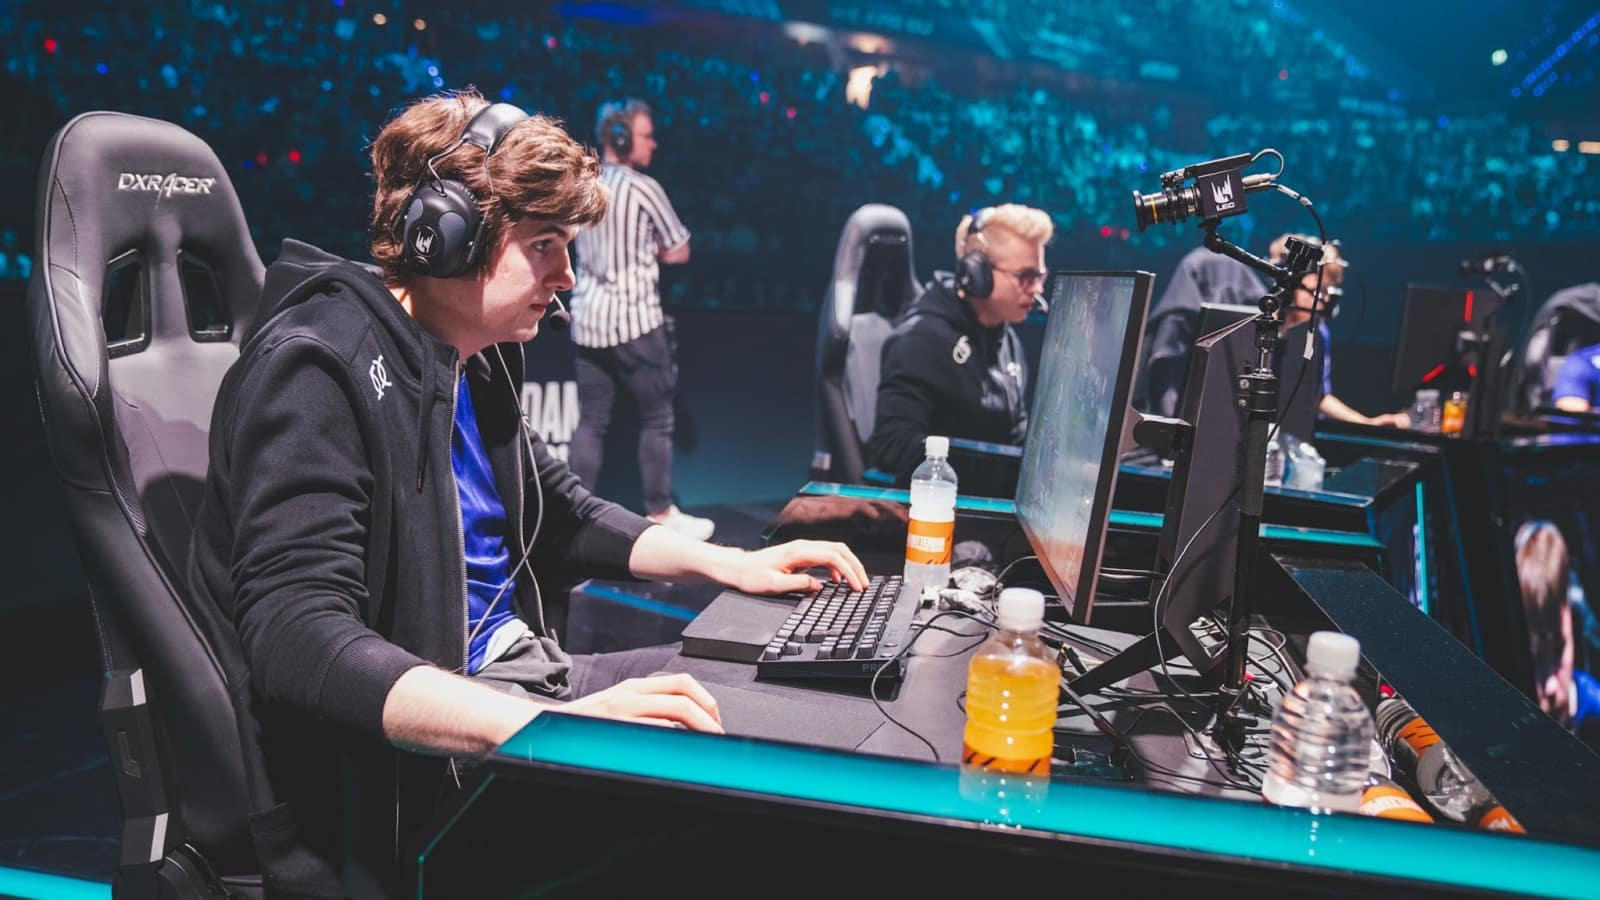 Alphari tops LCS Gold Difference with +493 at 10 minutes – Daily Esports